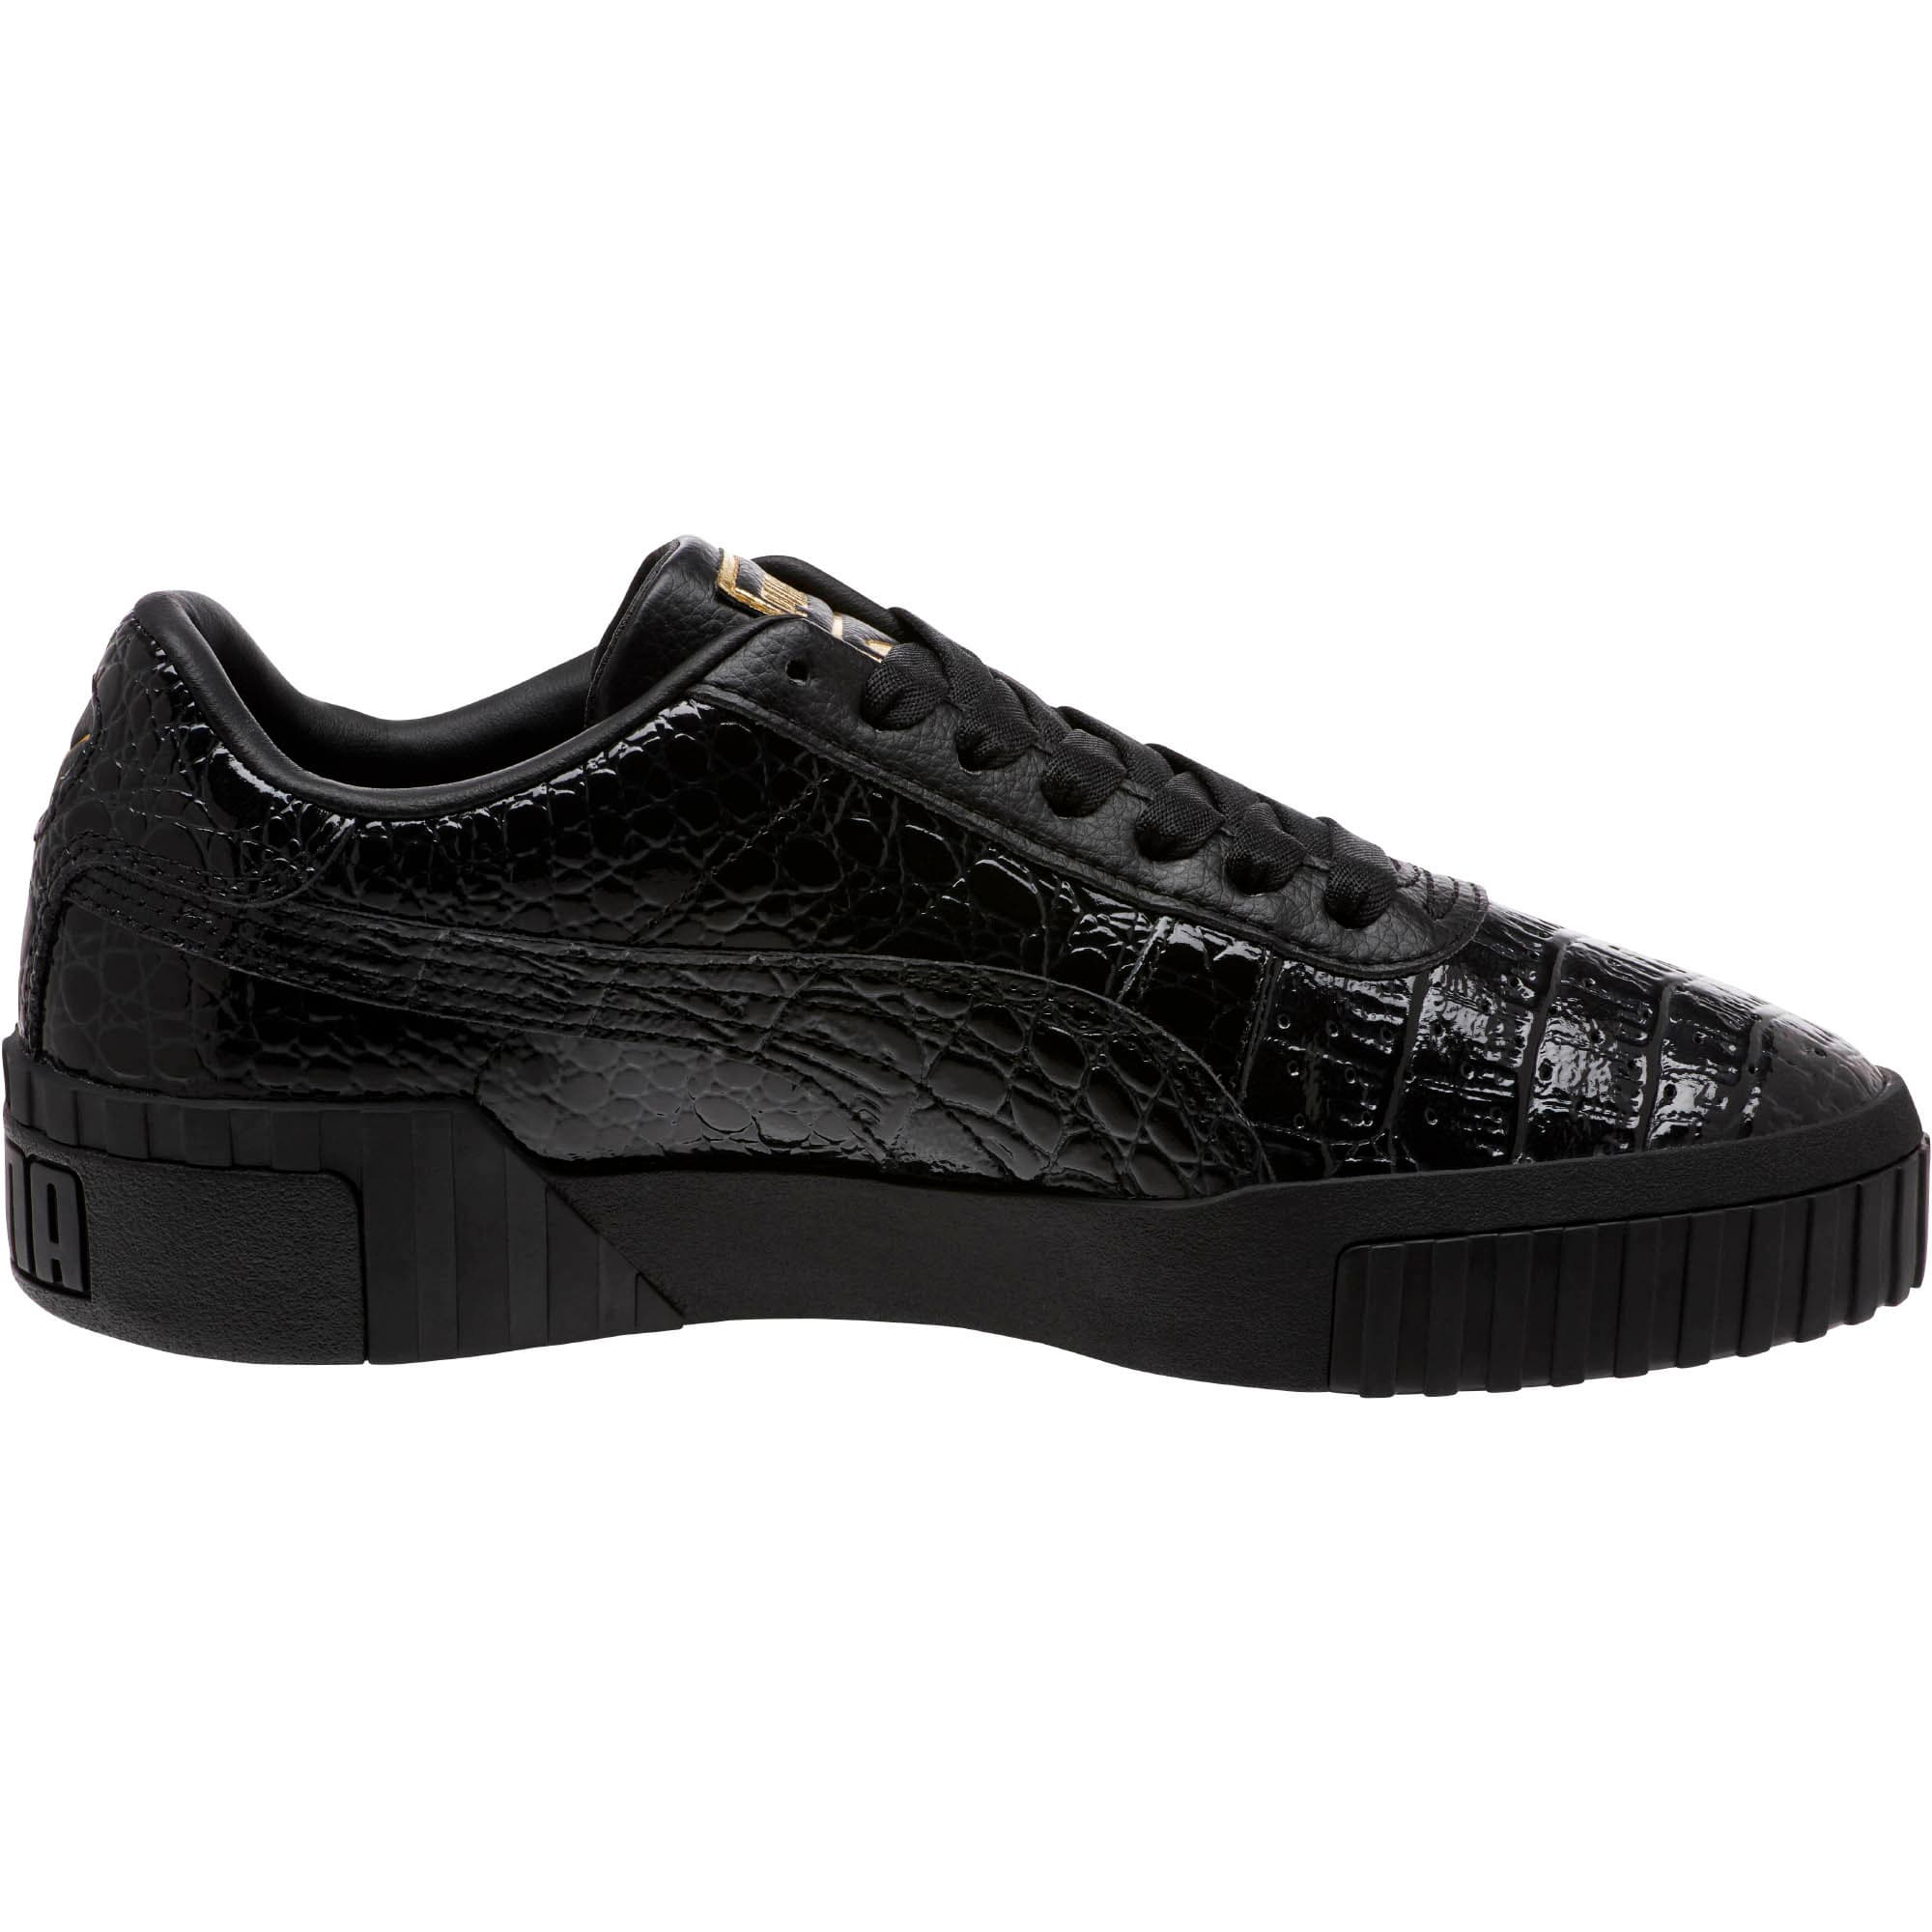 Thumbnail 4 of Cali Croc Women's Sneakers, Puma Black-Puma Black, medium